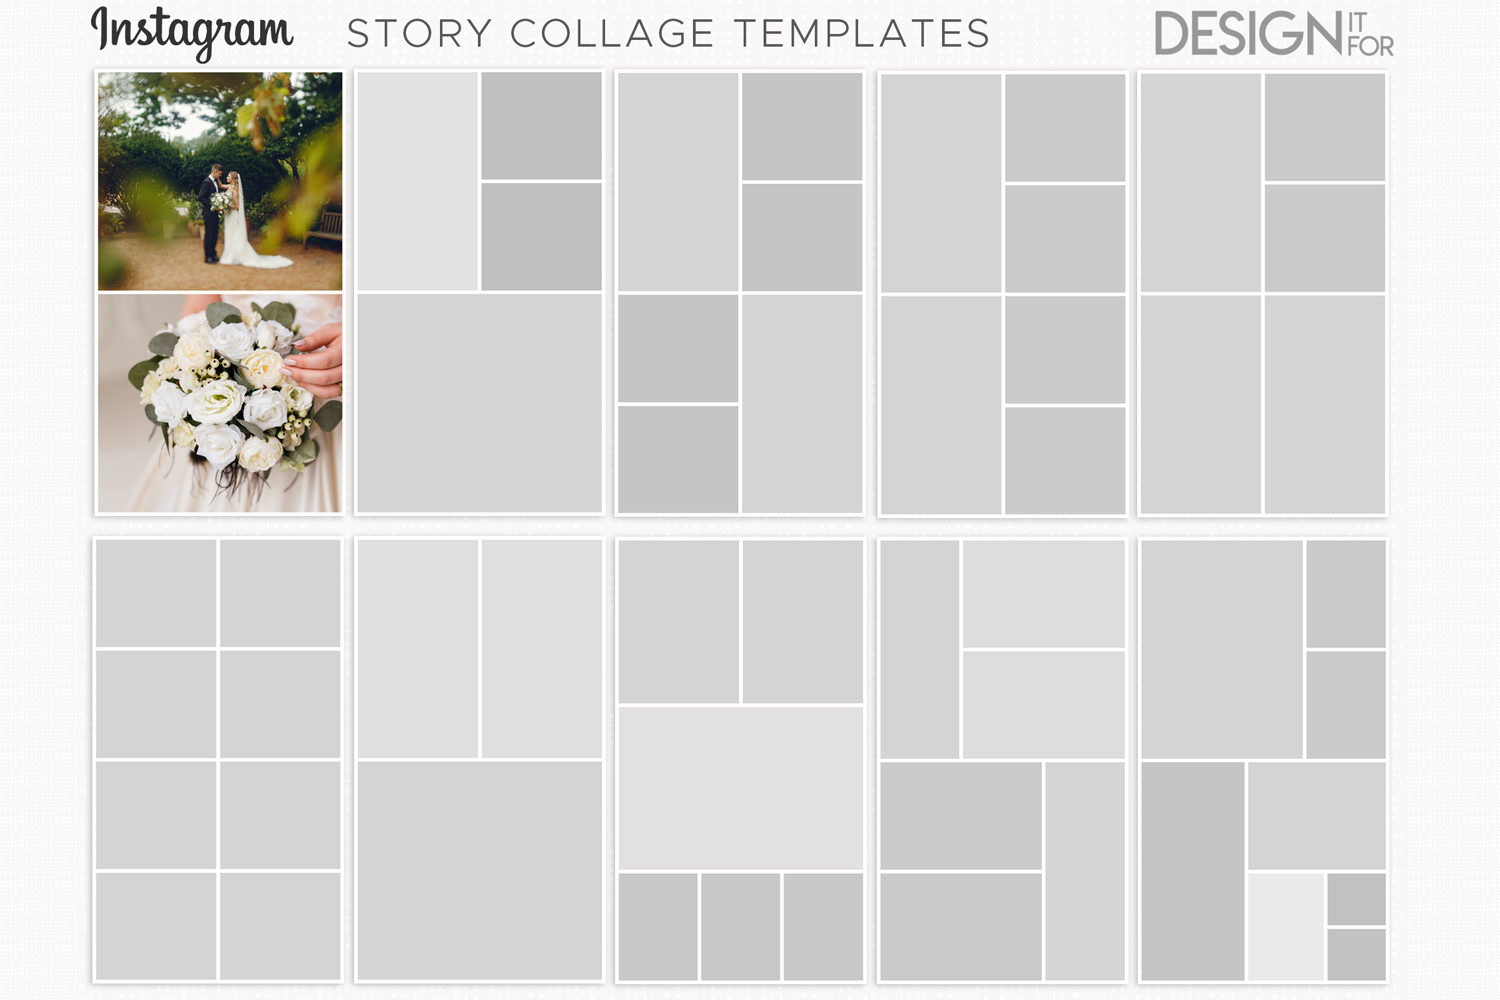 instagram story templates, instagram story collage templates example image 1